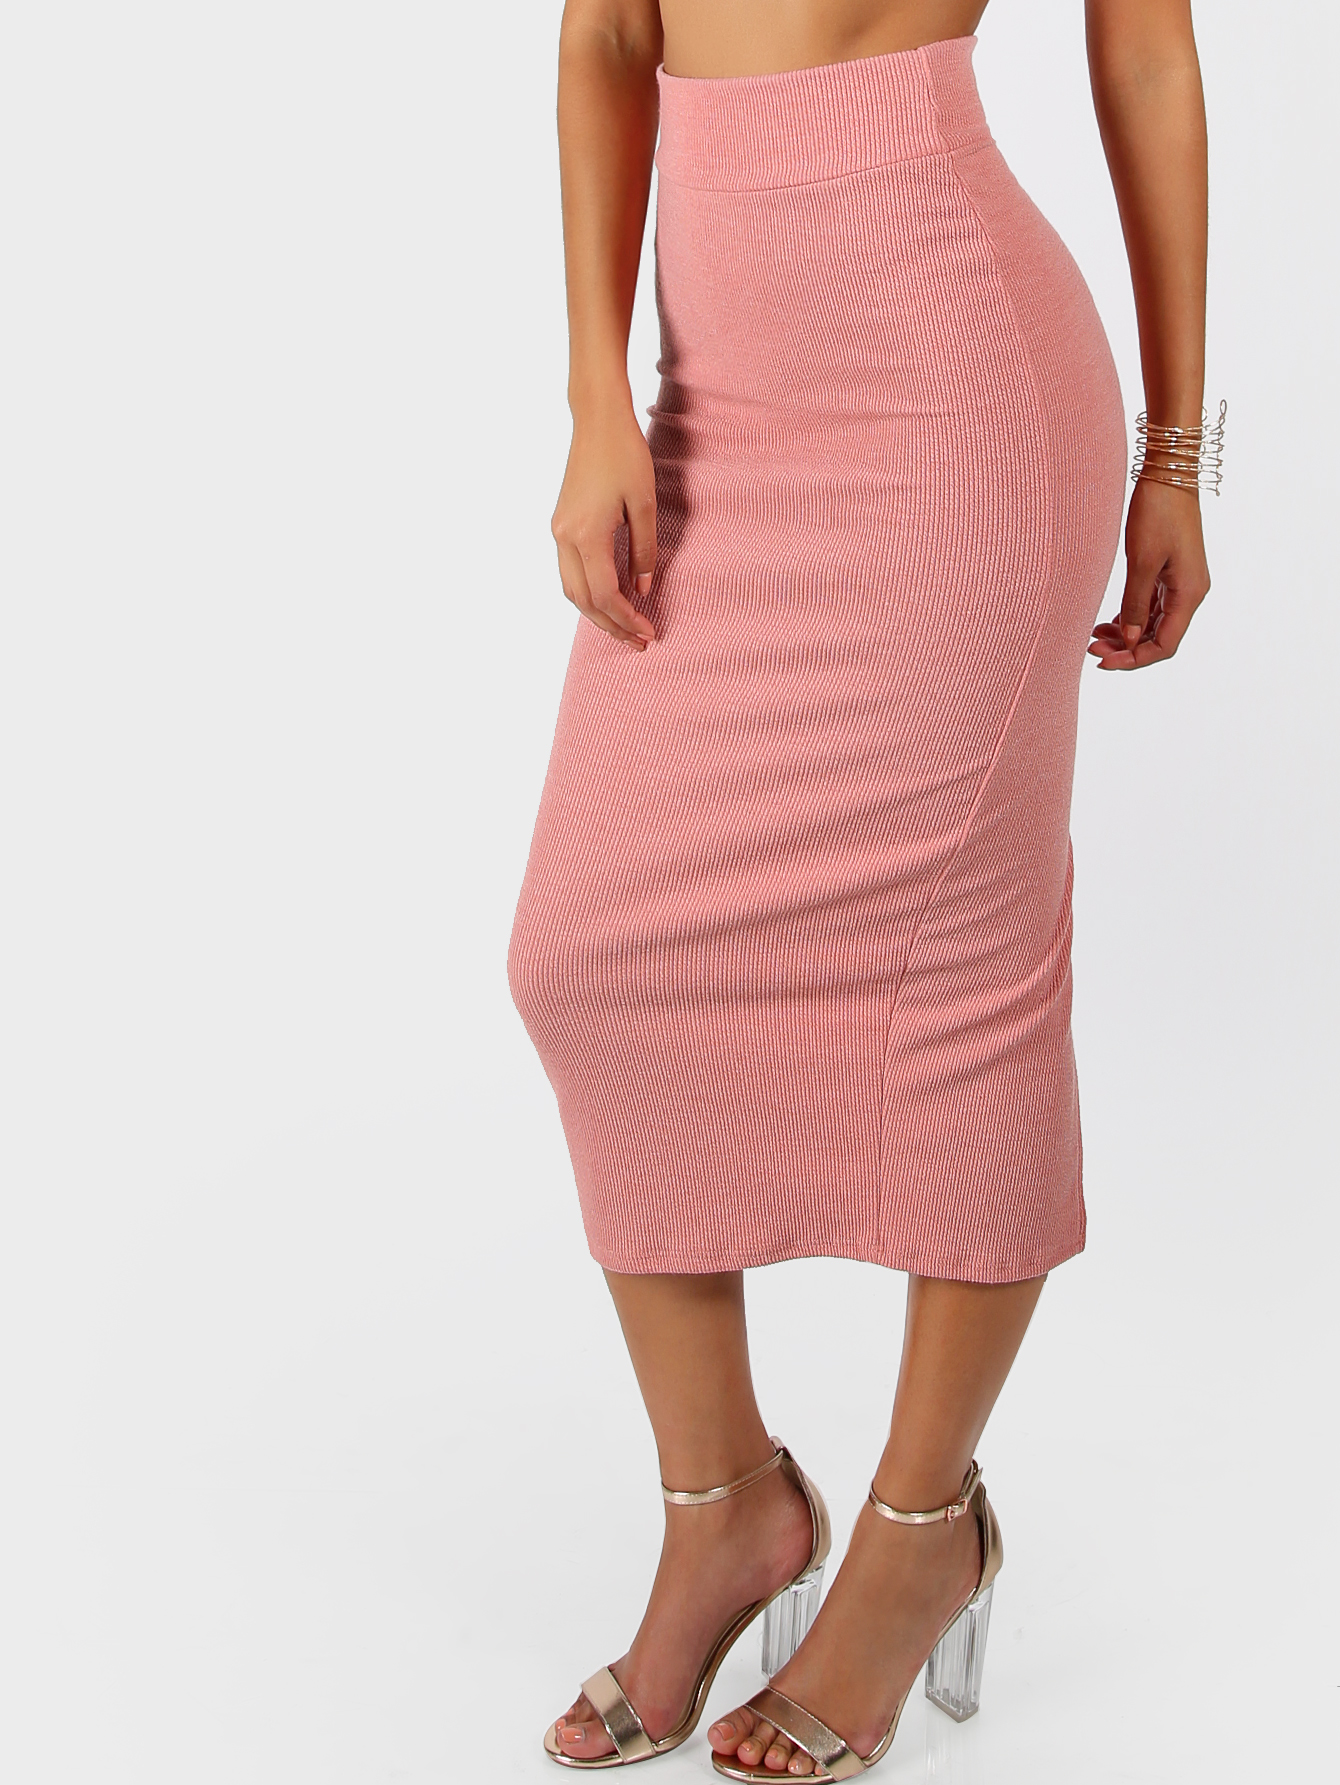 Ribbed Midi Skirt BLUSH -SheIn(Sheinside)